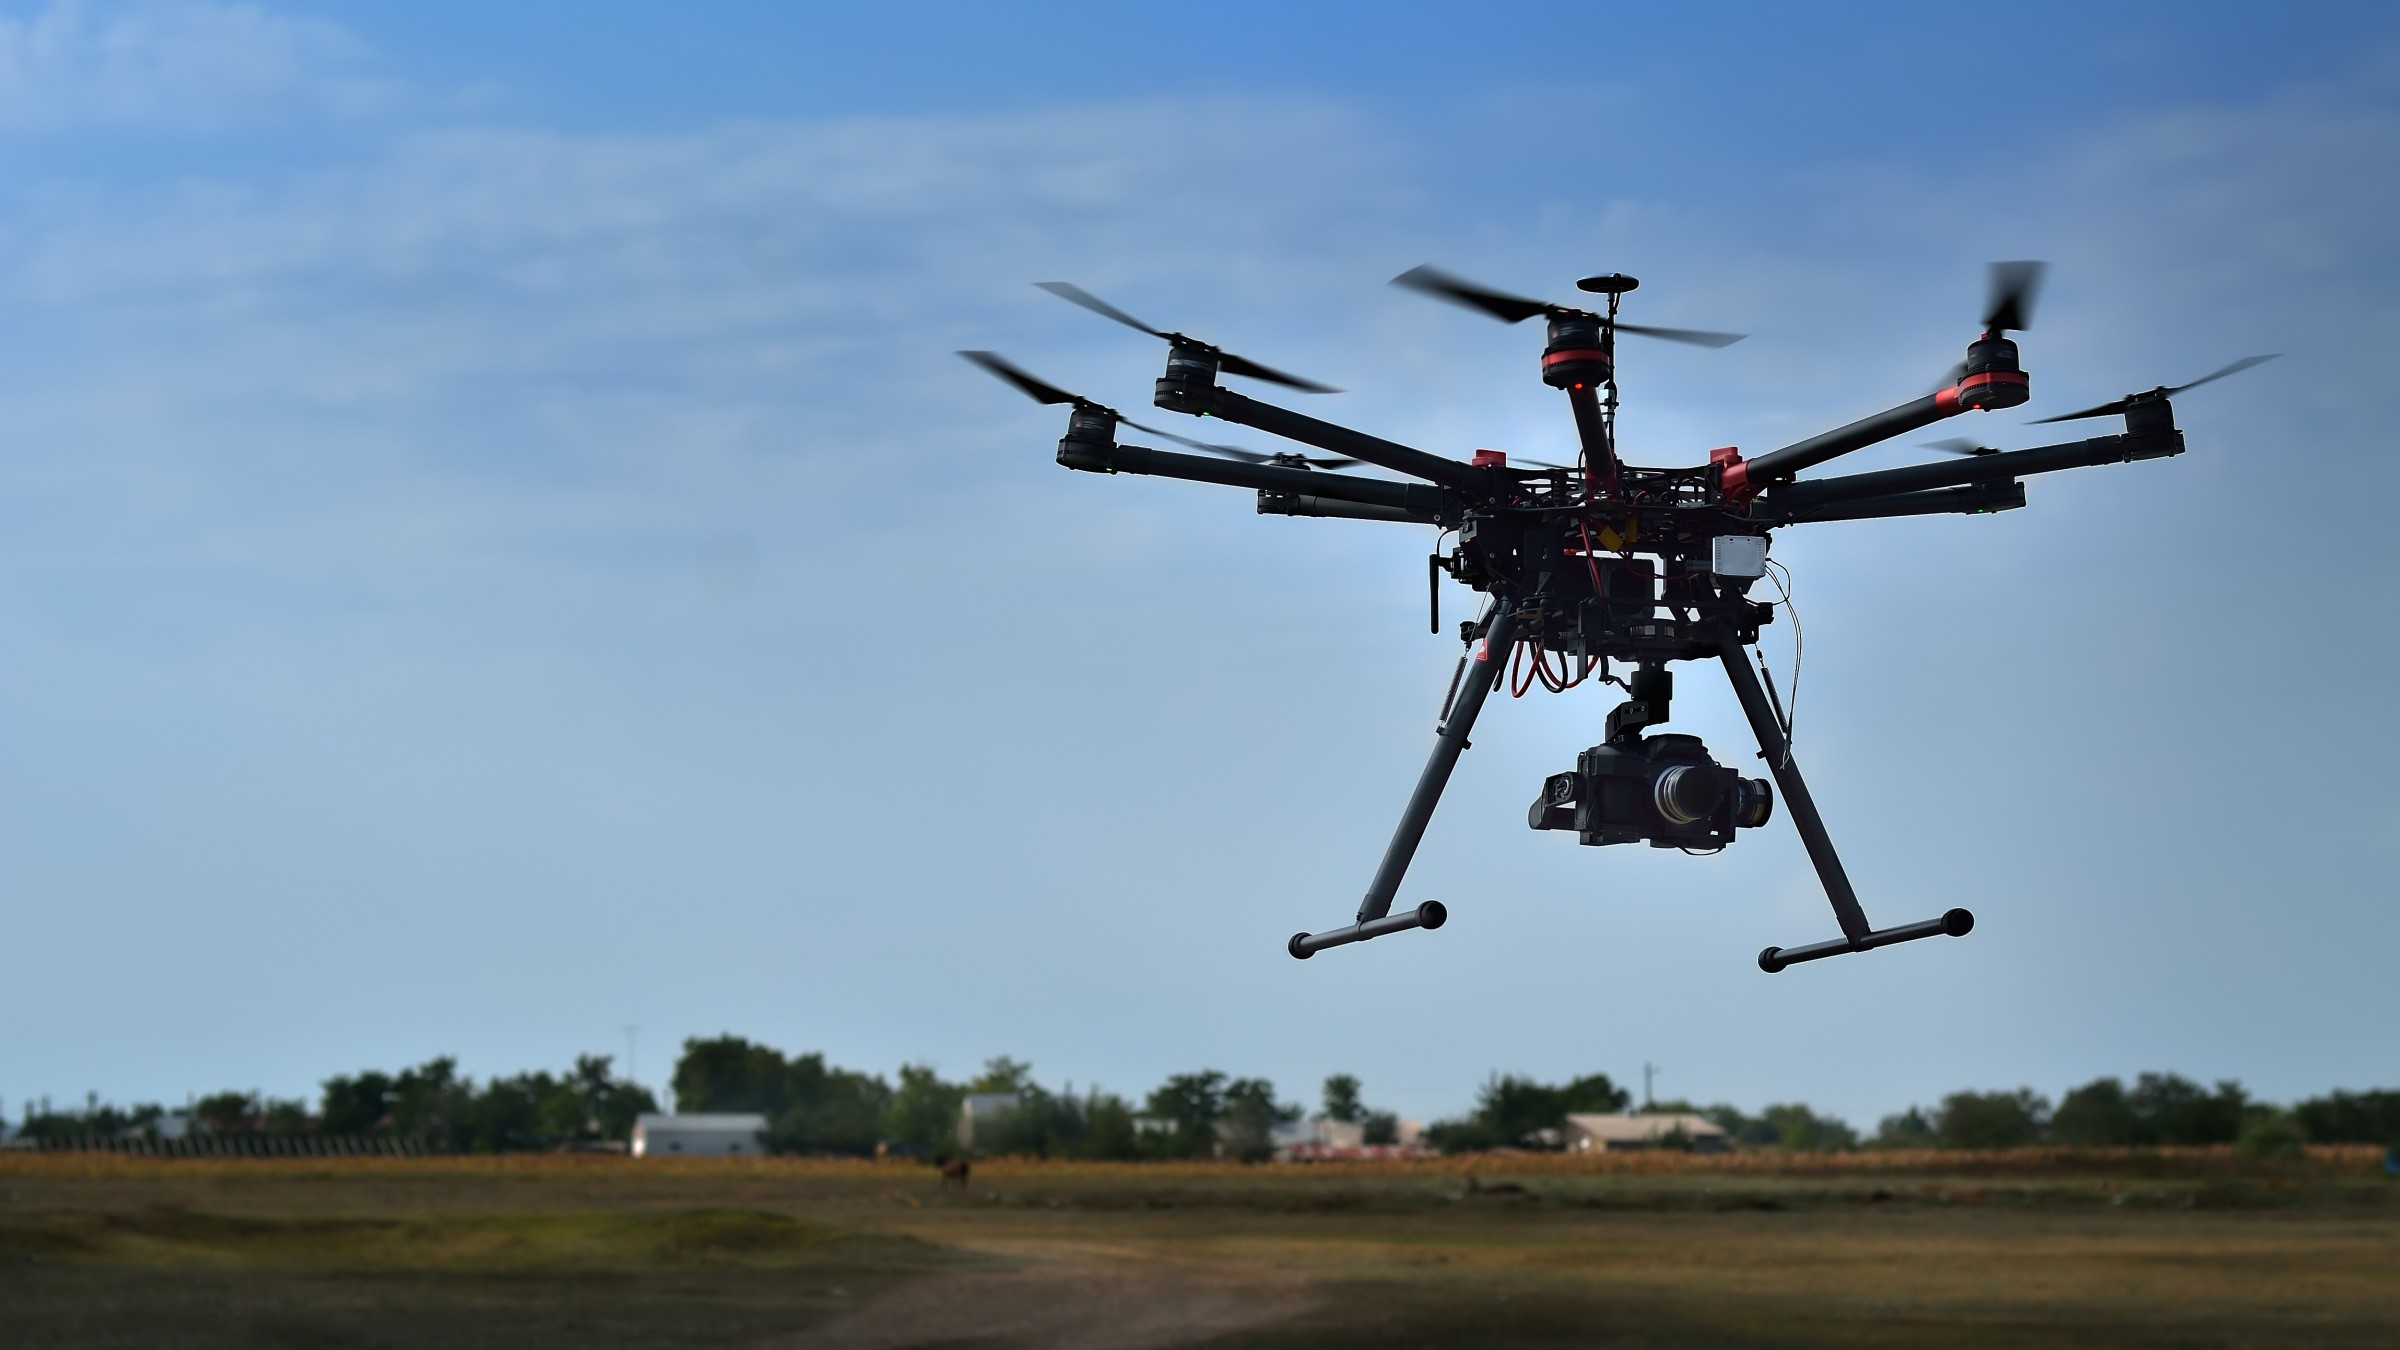 New Faa Unmanned Aircraft Rules Take Flight